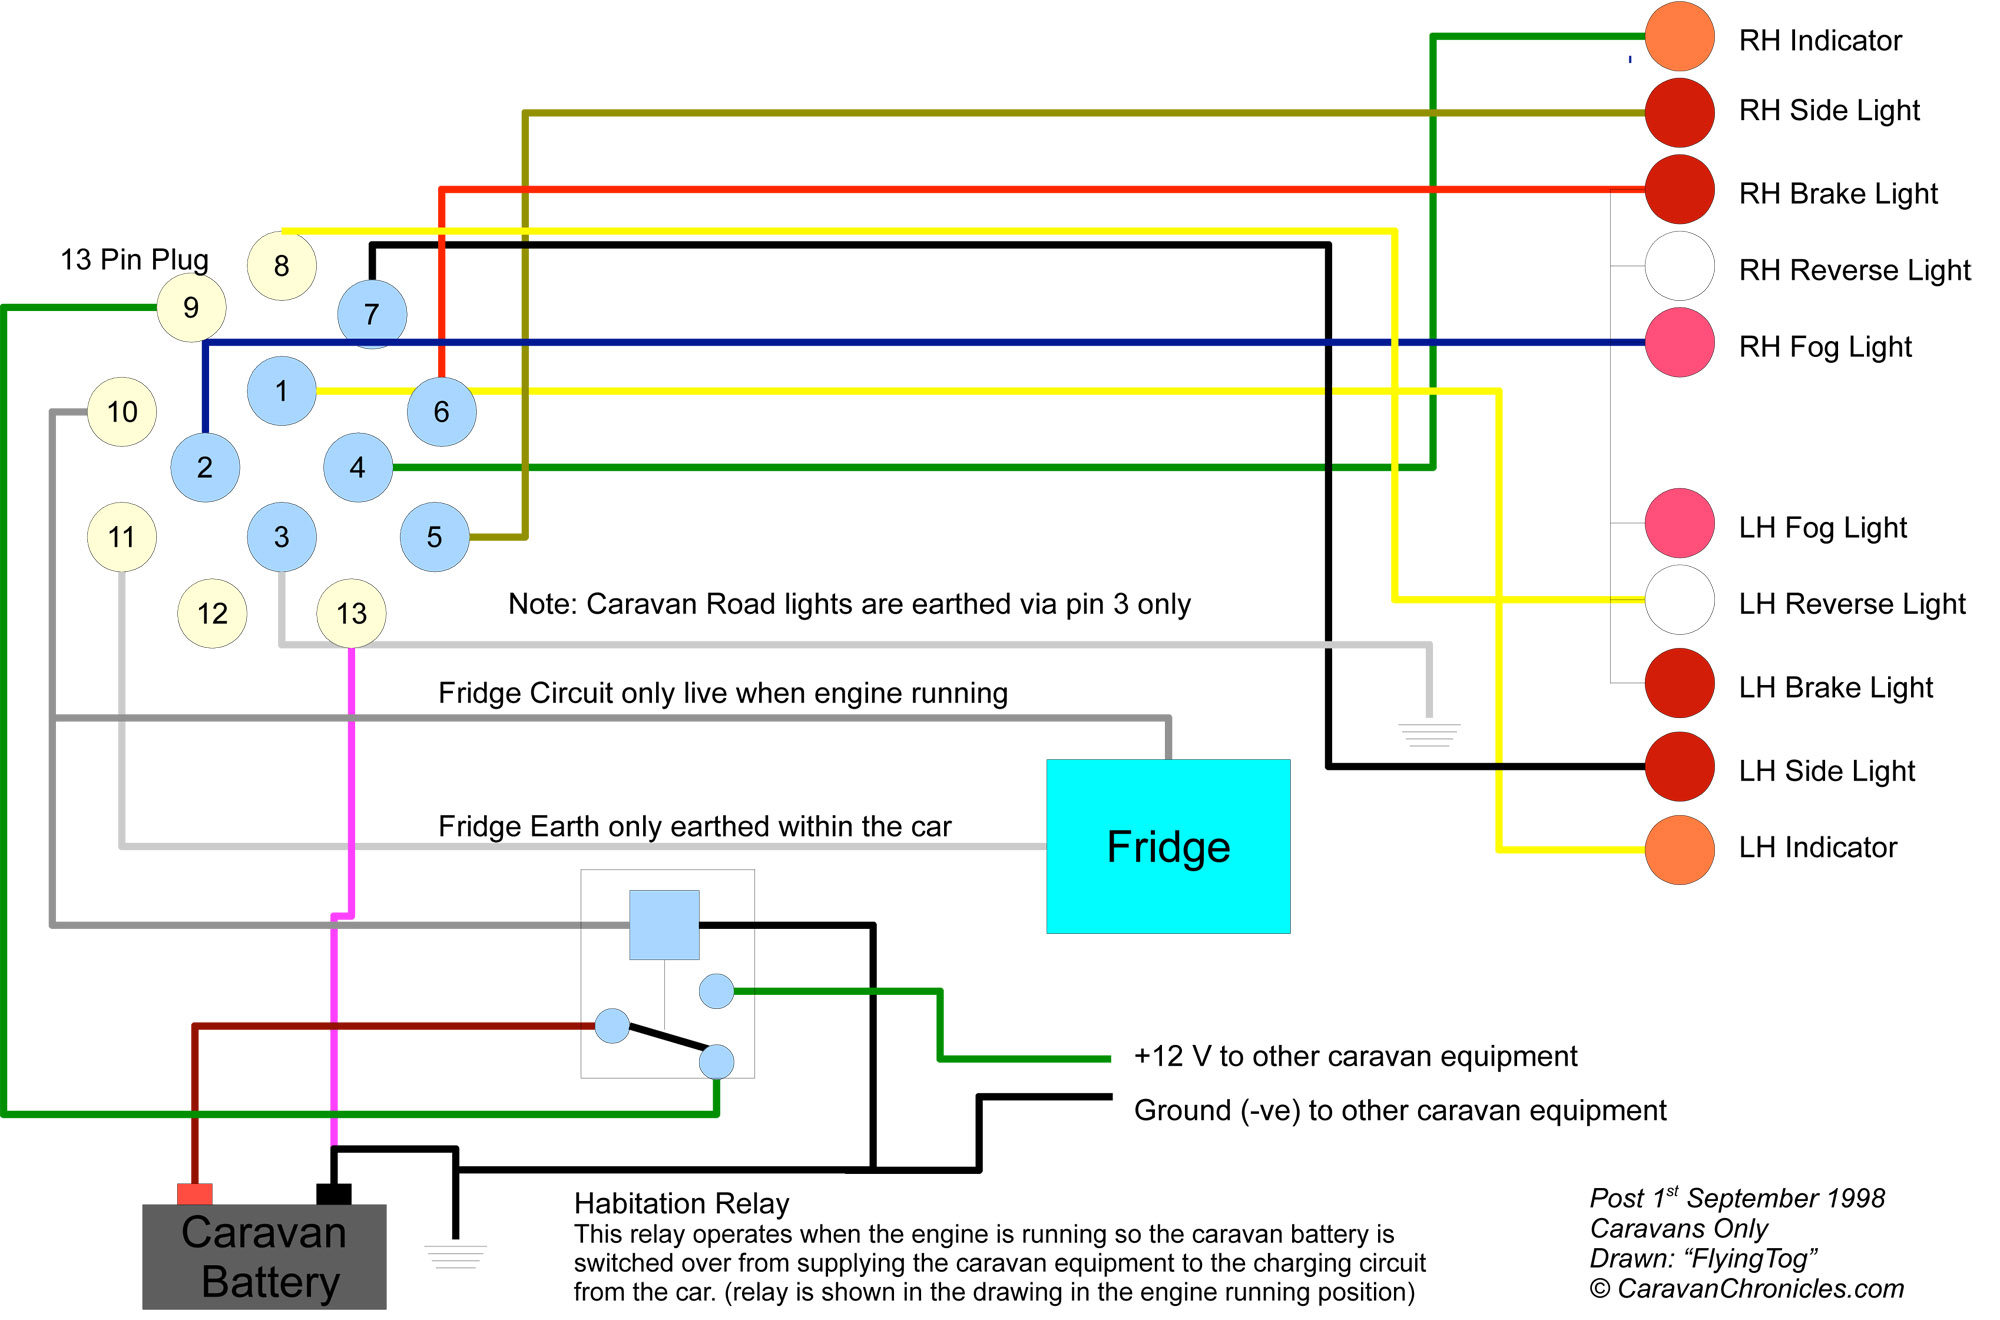 Caravan Charger Wiring Diagram Diagrams 2009 Dodge Engine Understanding The Leisure Battery Charging Circuit 09 2008